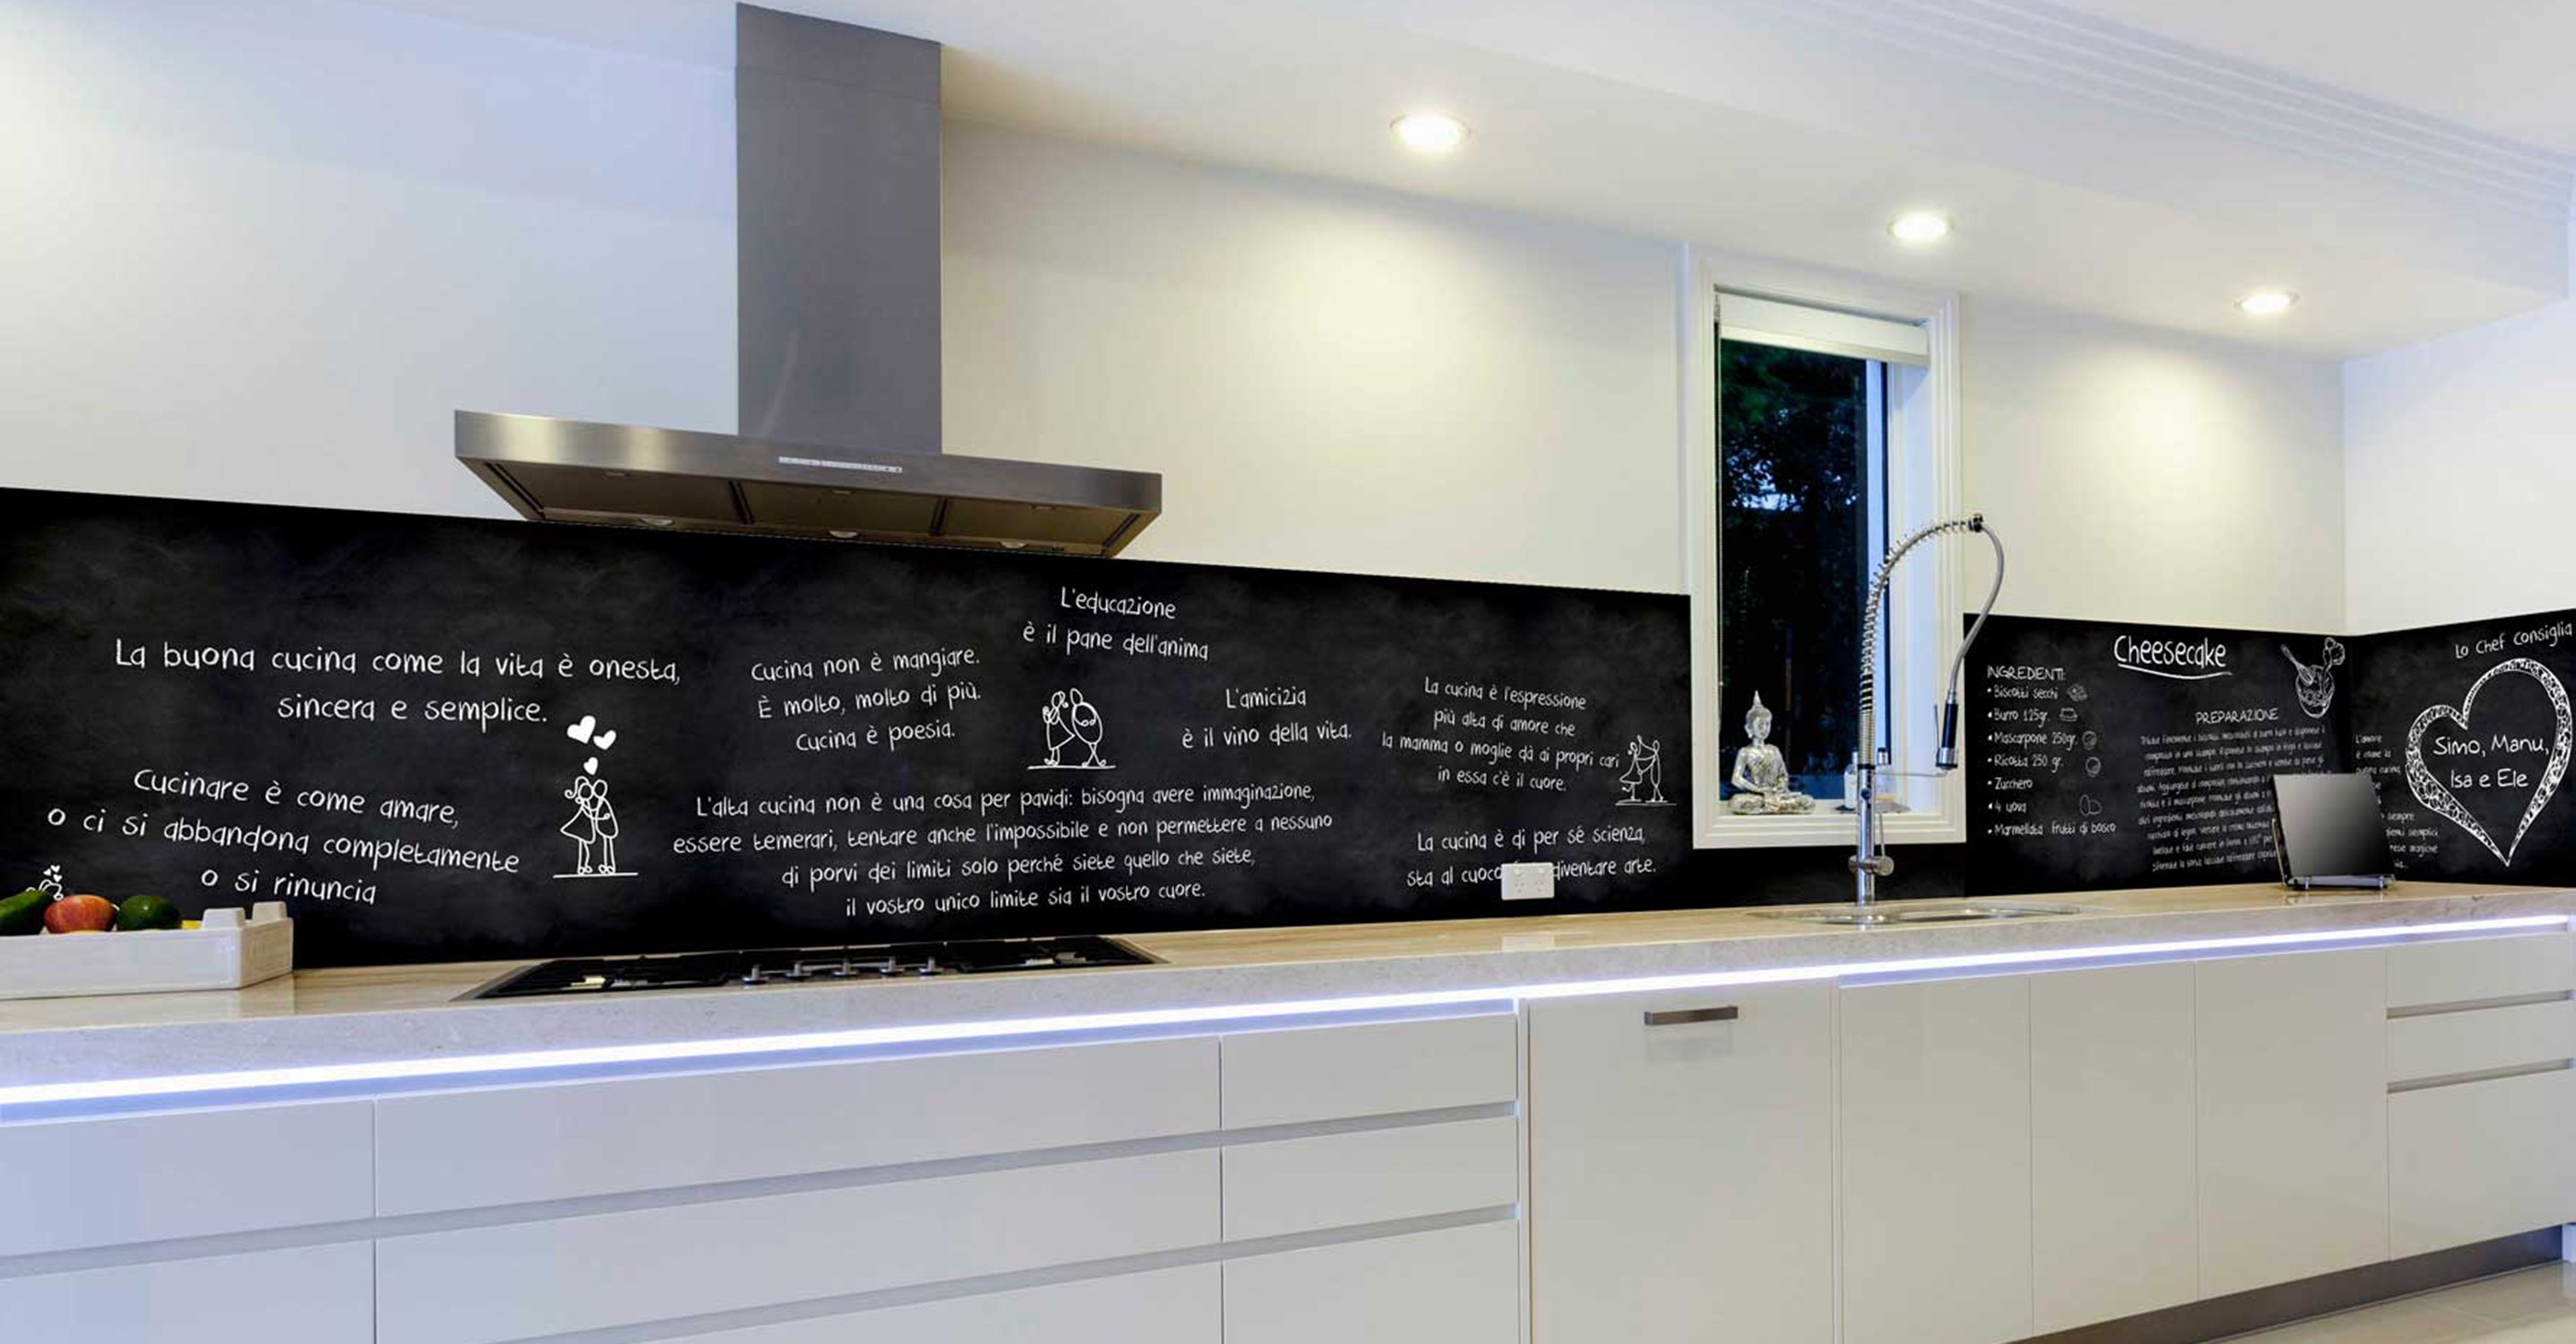 Beautiful Pannelli Rivestimento Cucina Ideas - Lepicentre.info ...